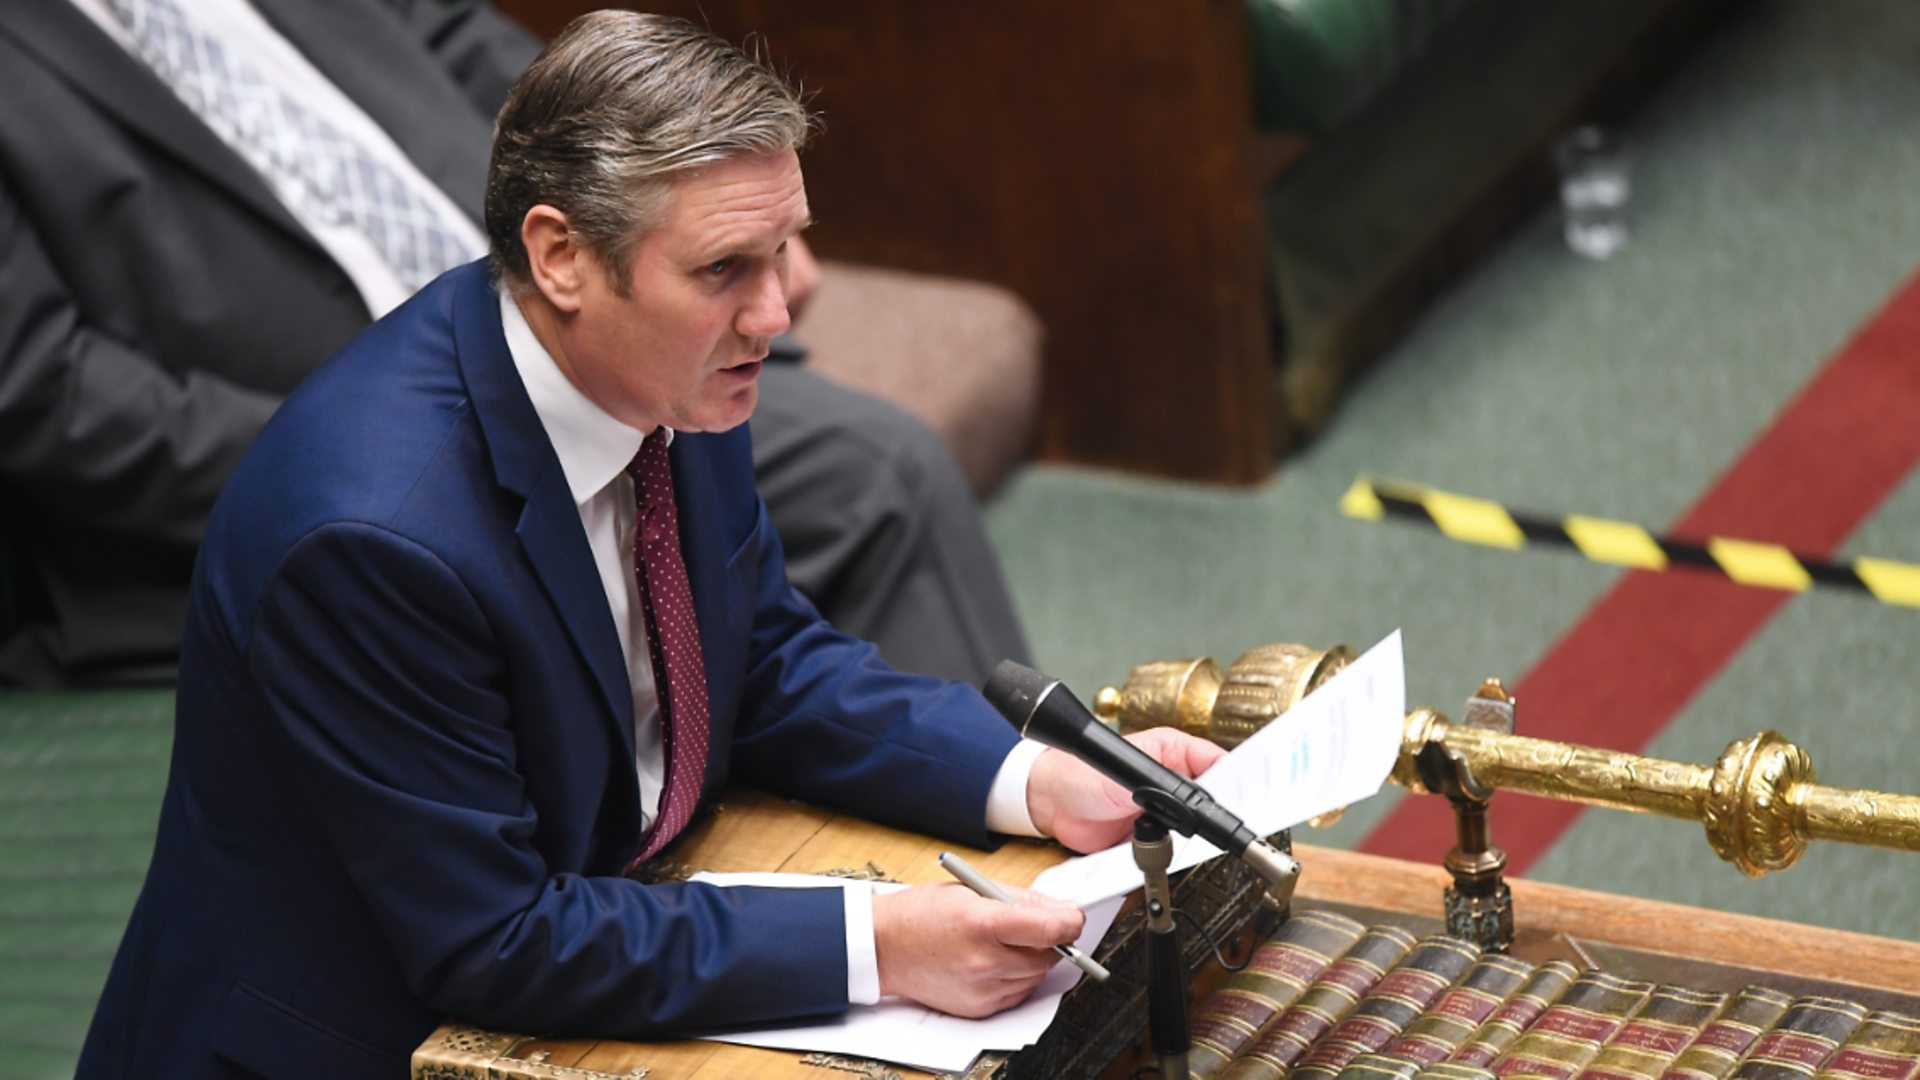 Keir Starmer in the House of Commons - Credit: Jessica Taylor/UK Parliament